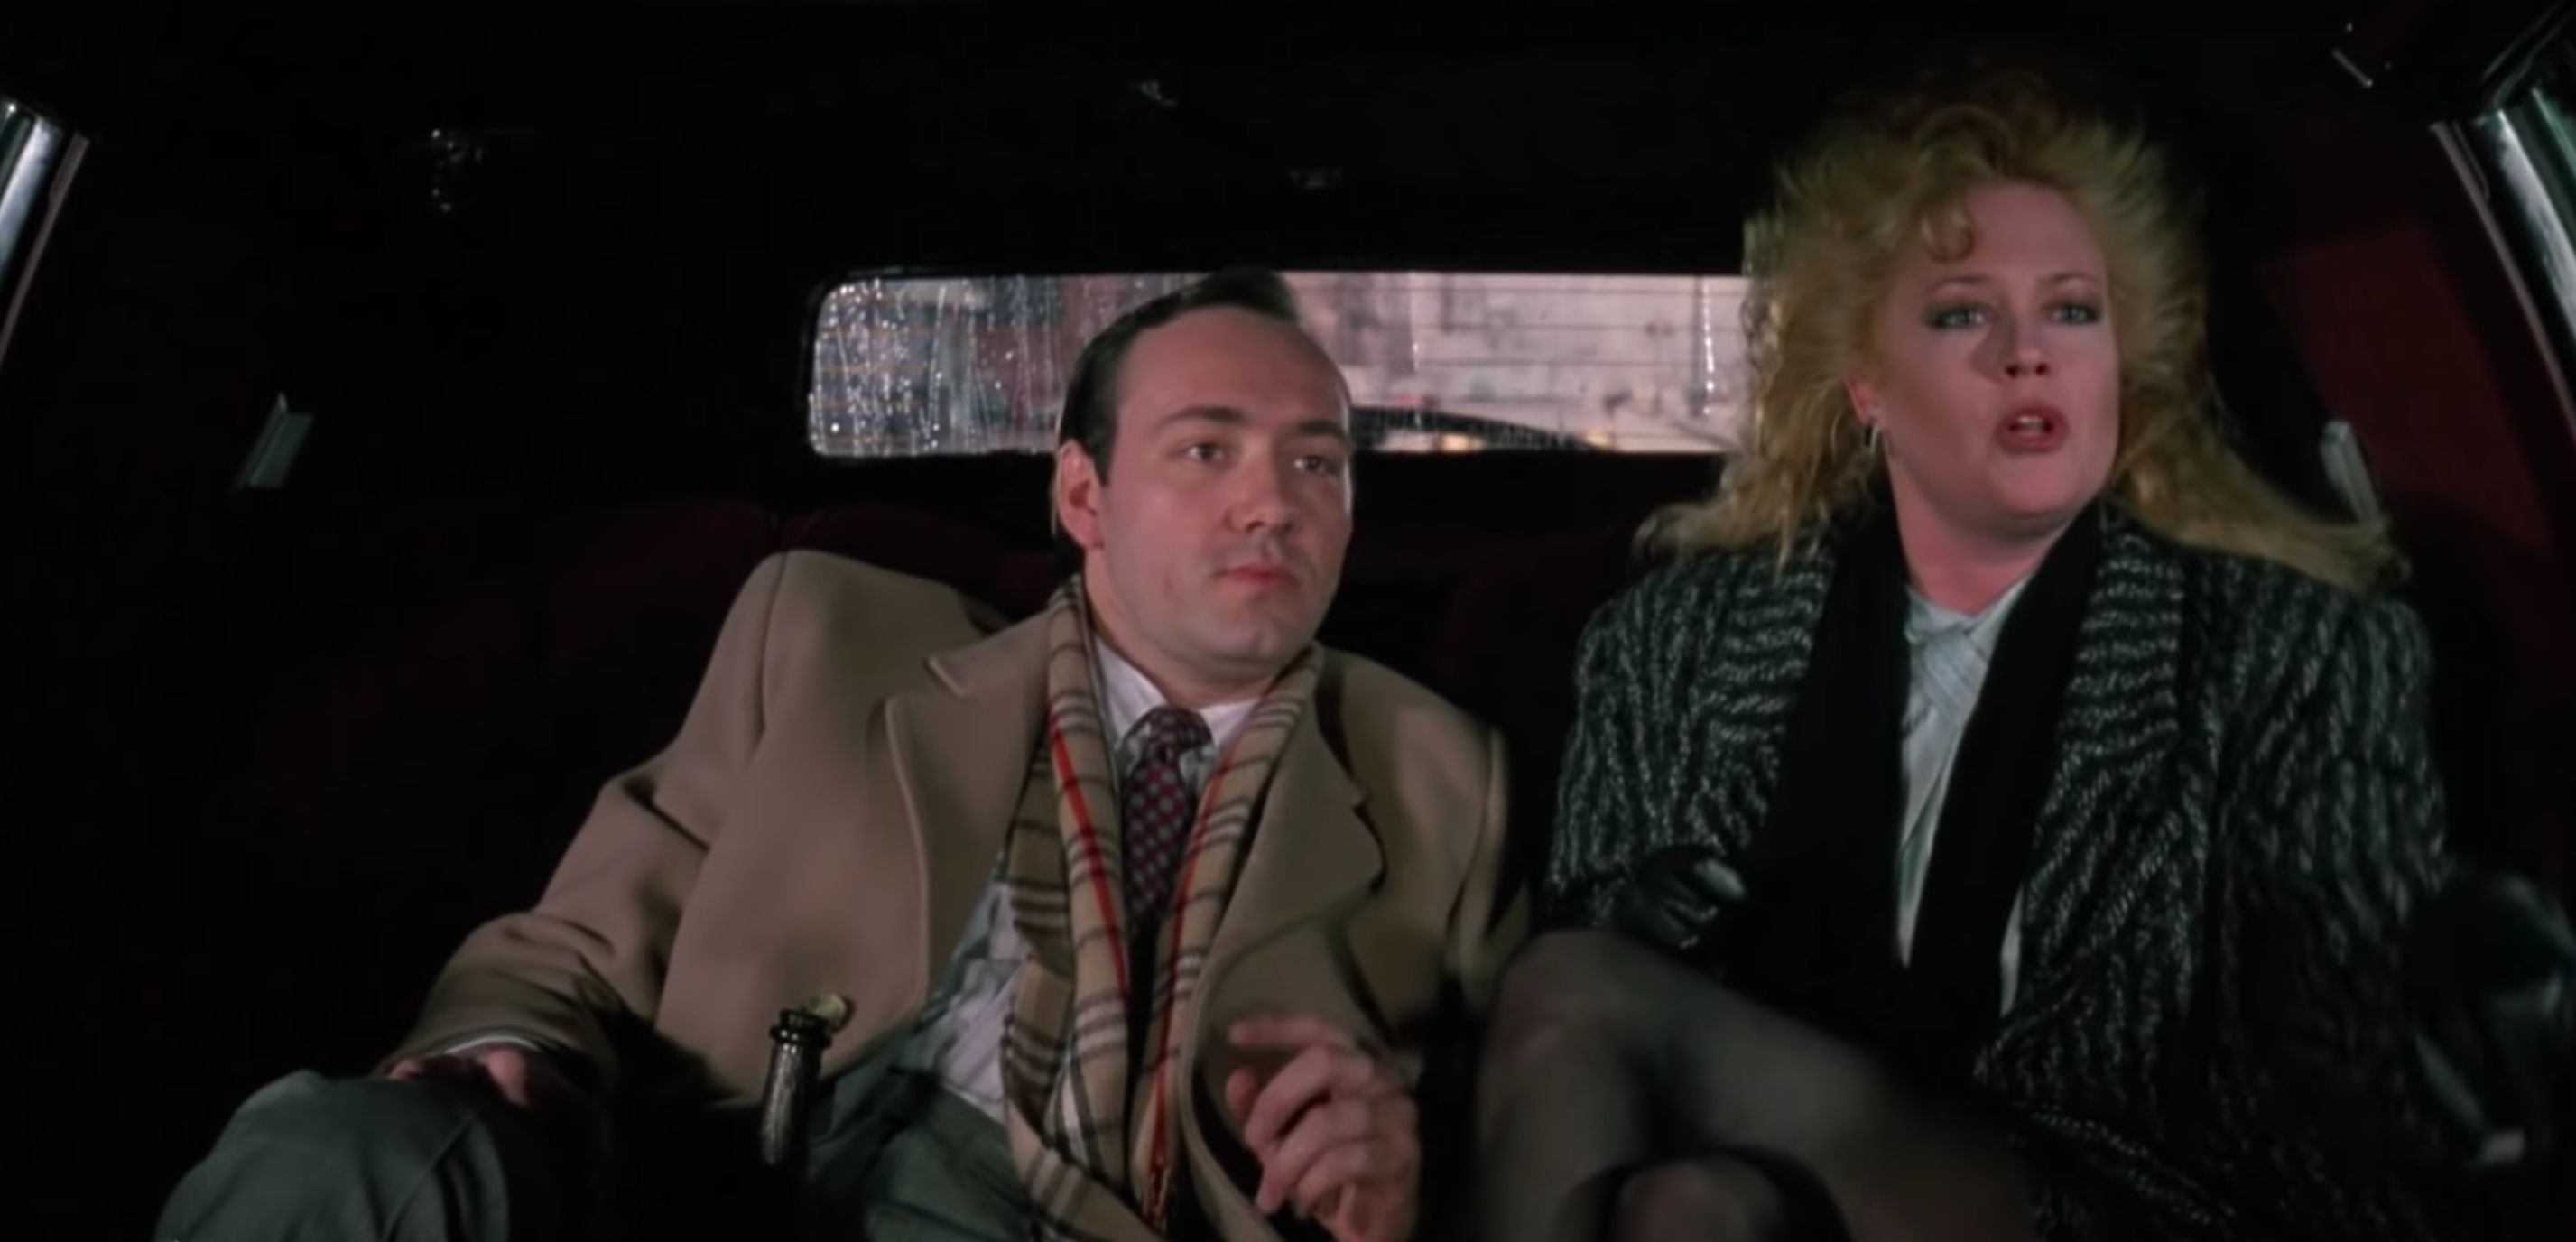 Kevin Spacey played a workplace creep in the 1988 rom-com